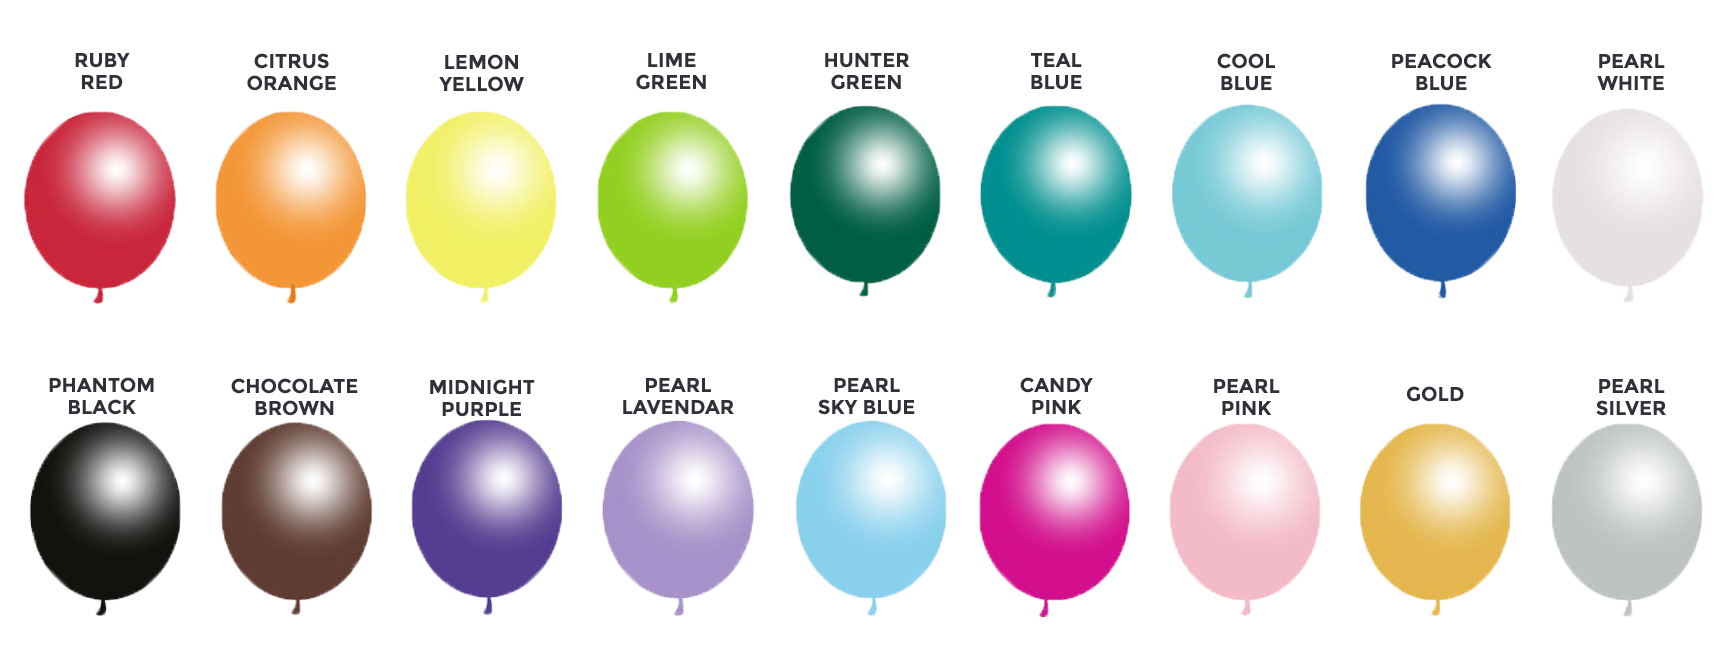 Balloon color swatches